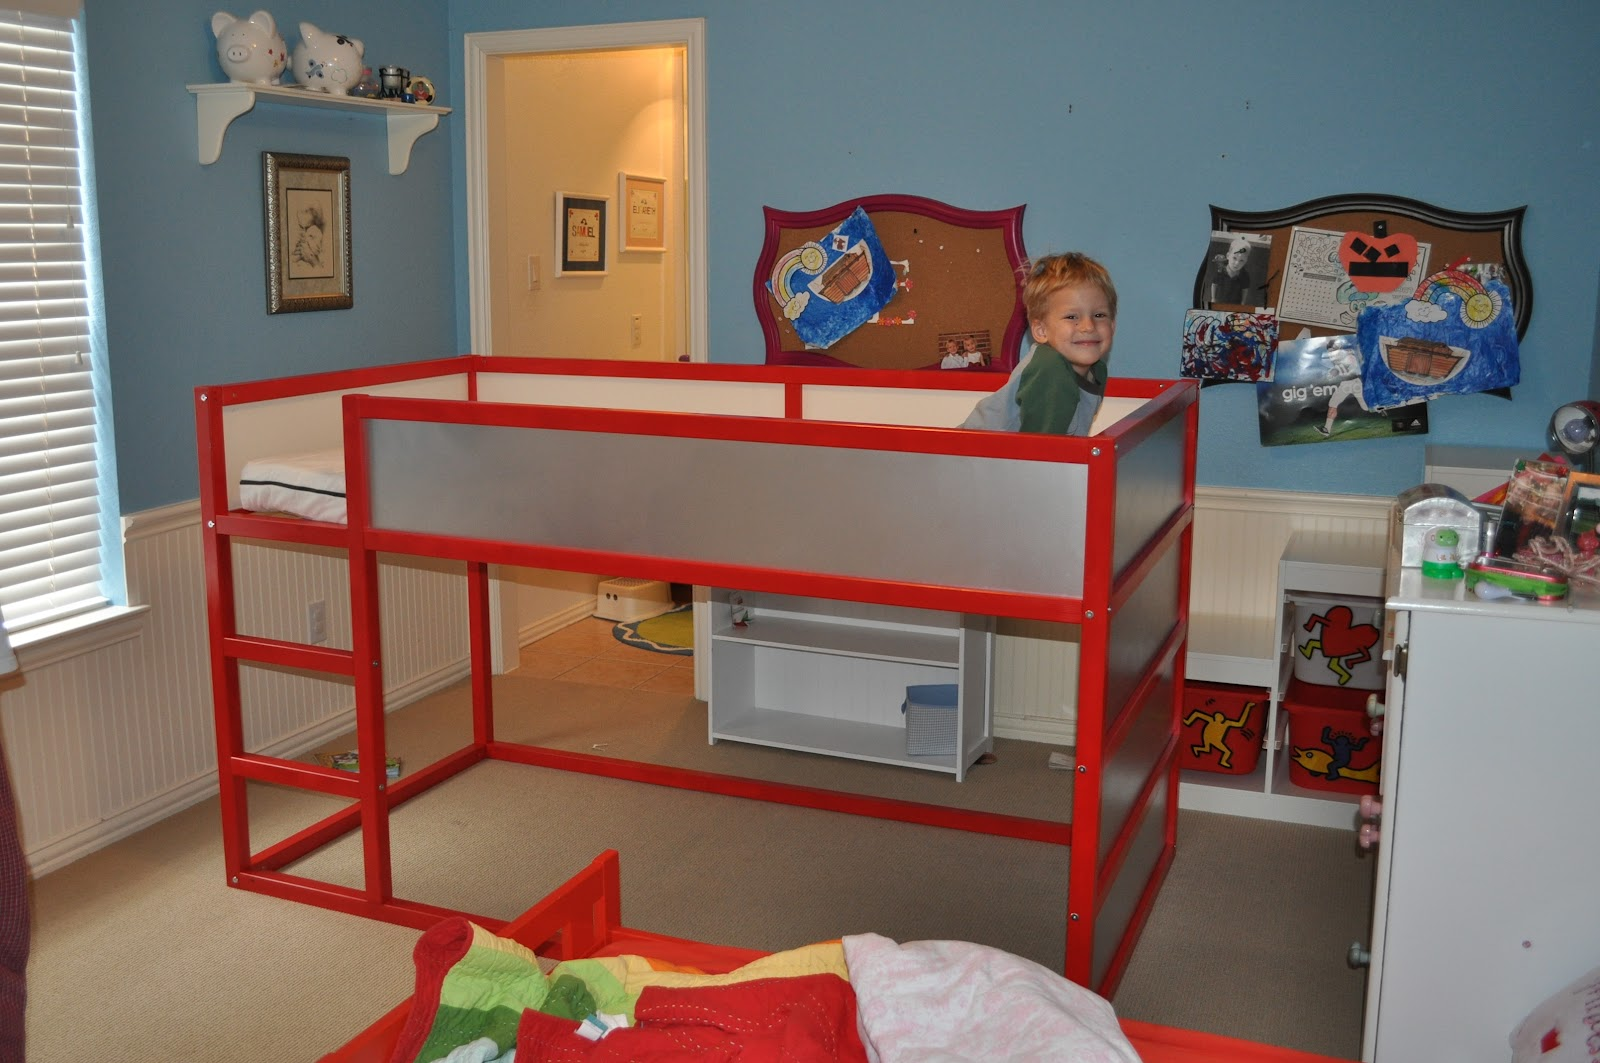 Bed For 4 Year Old 28 Images Bunk Beds For 4 Year Olds